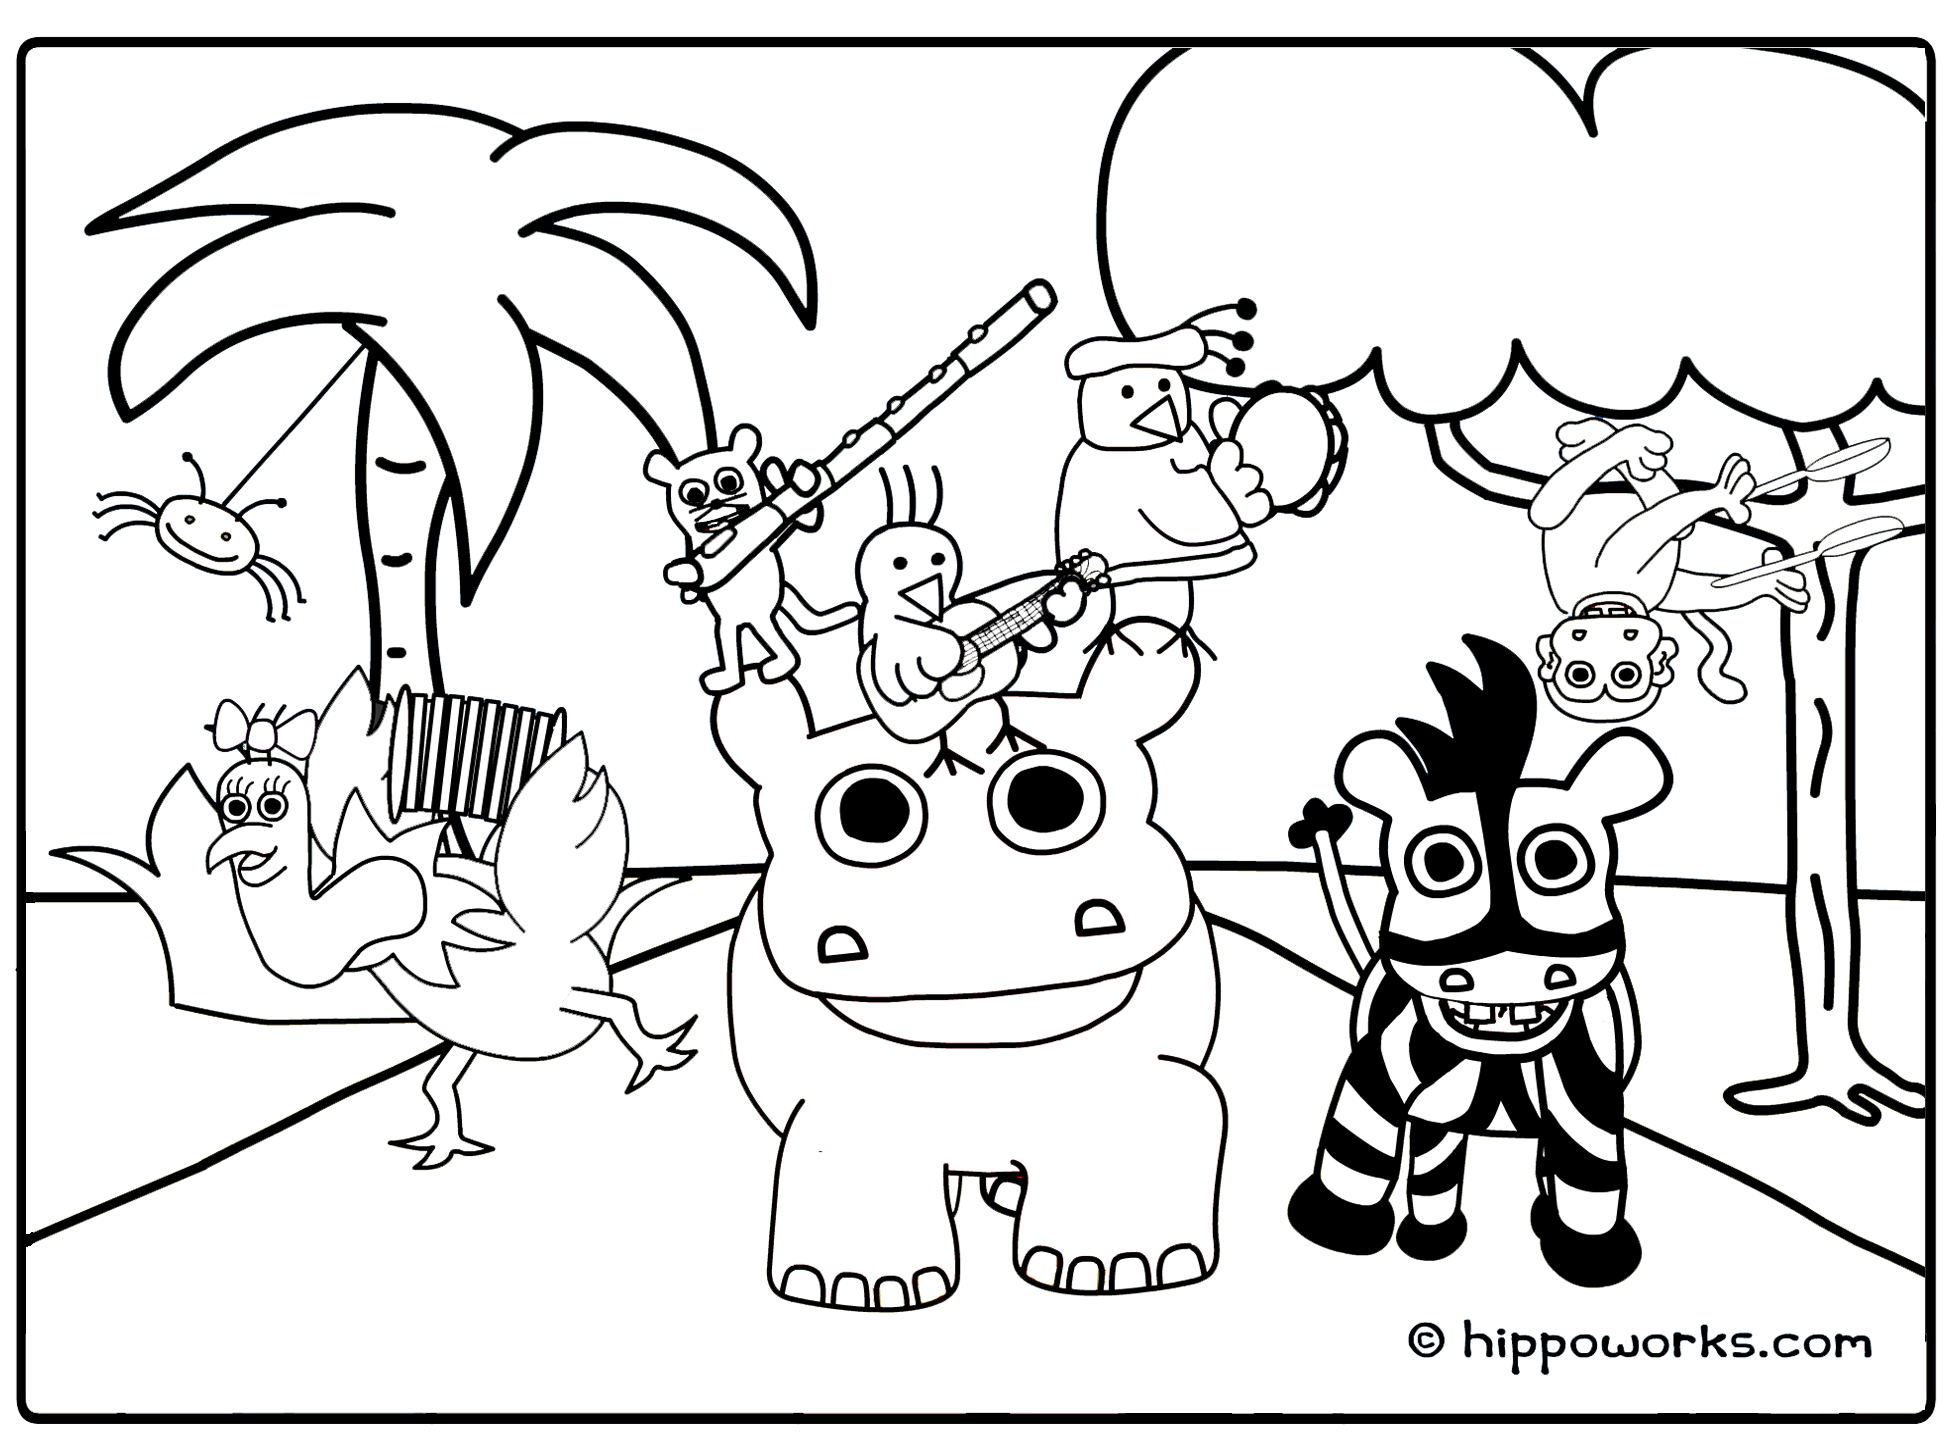 Jungle coloring pages to download